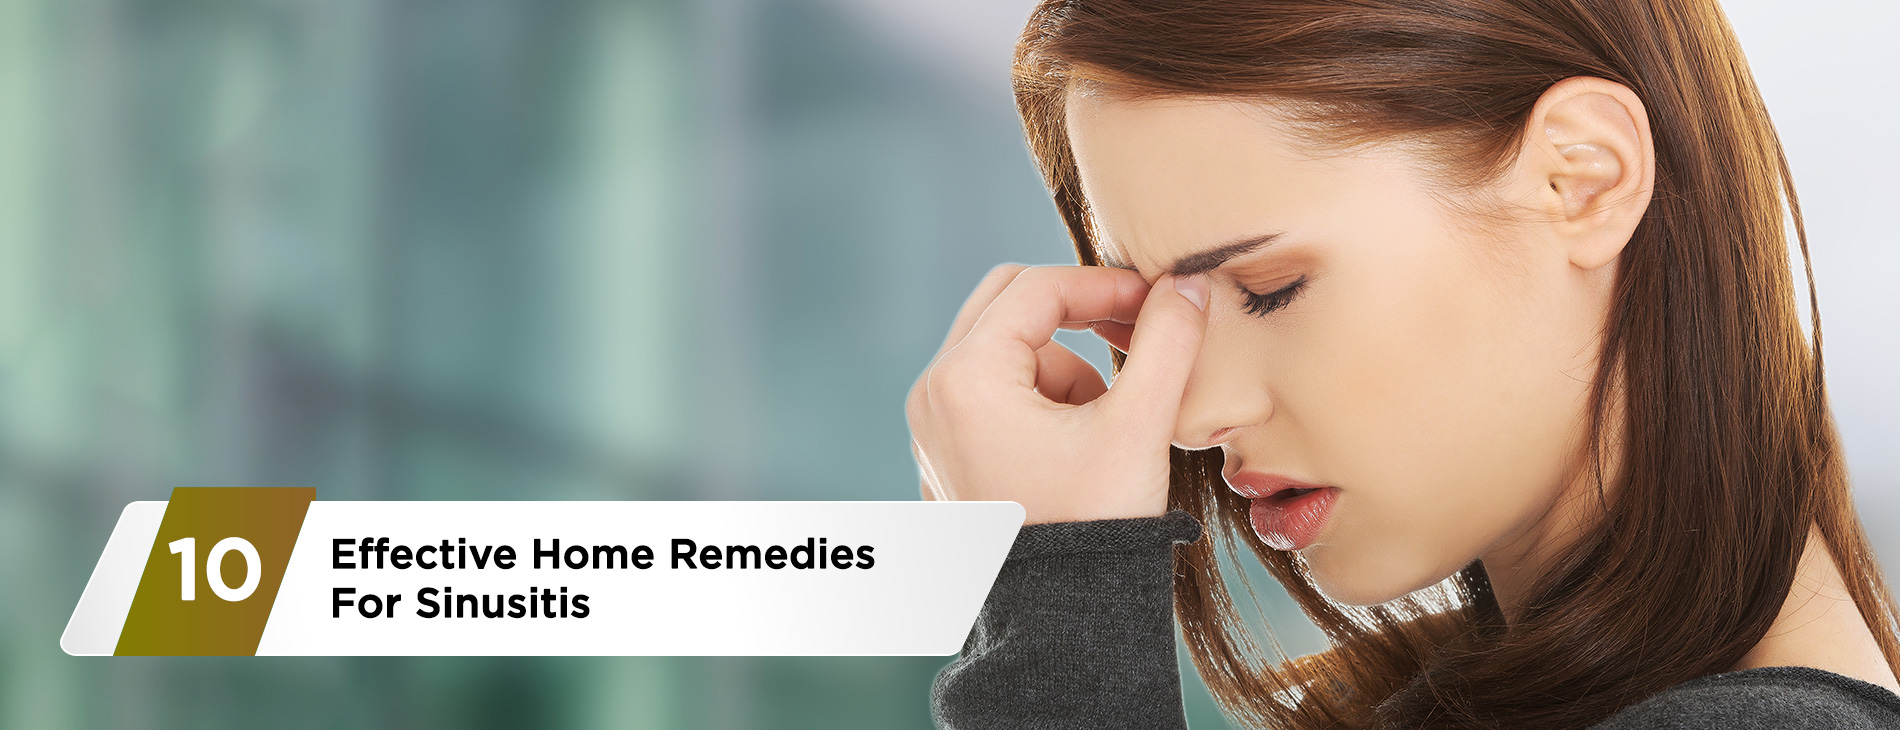 10-Effective-Home-Remedies-For-Sinusitis